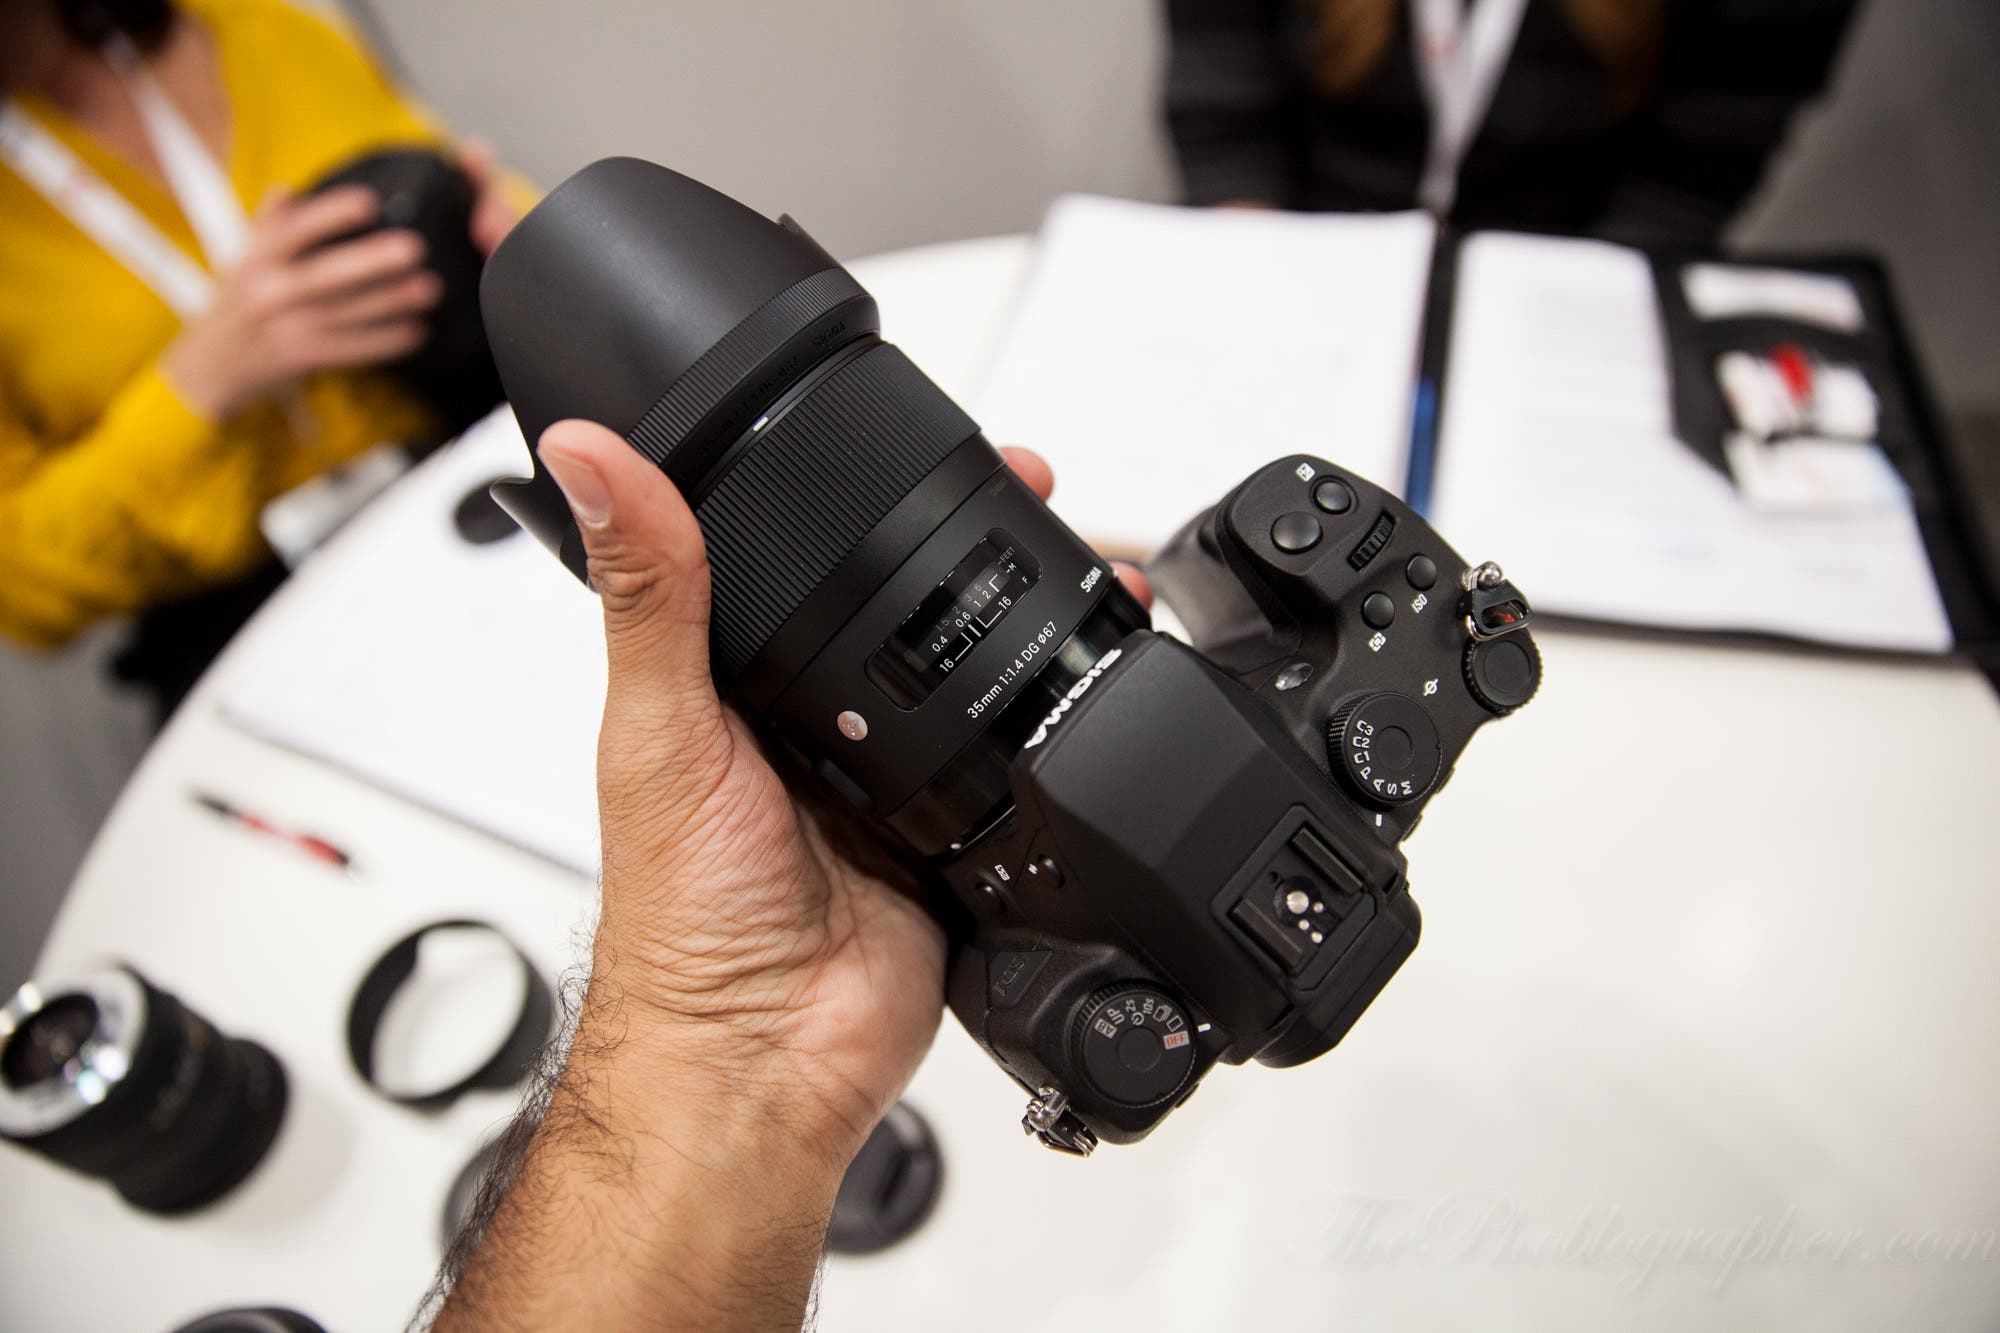 Sigma's New Artsy 35mm f1.4 Lens Gets a Price Tag